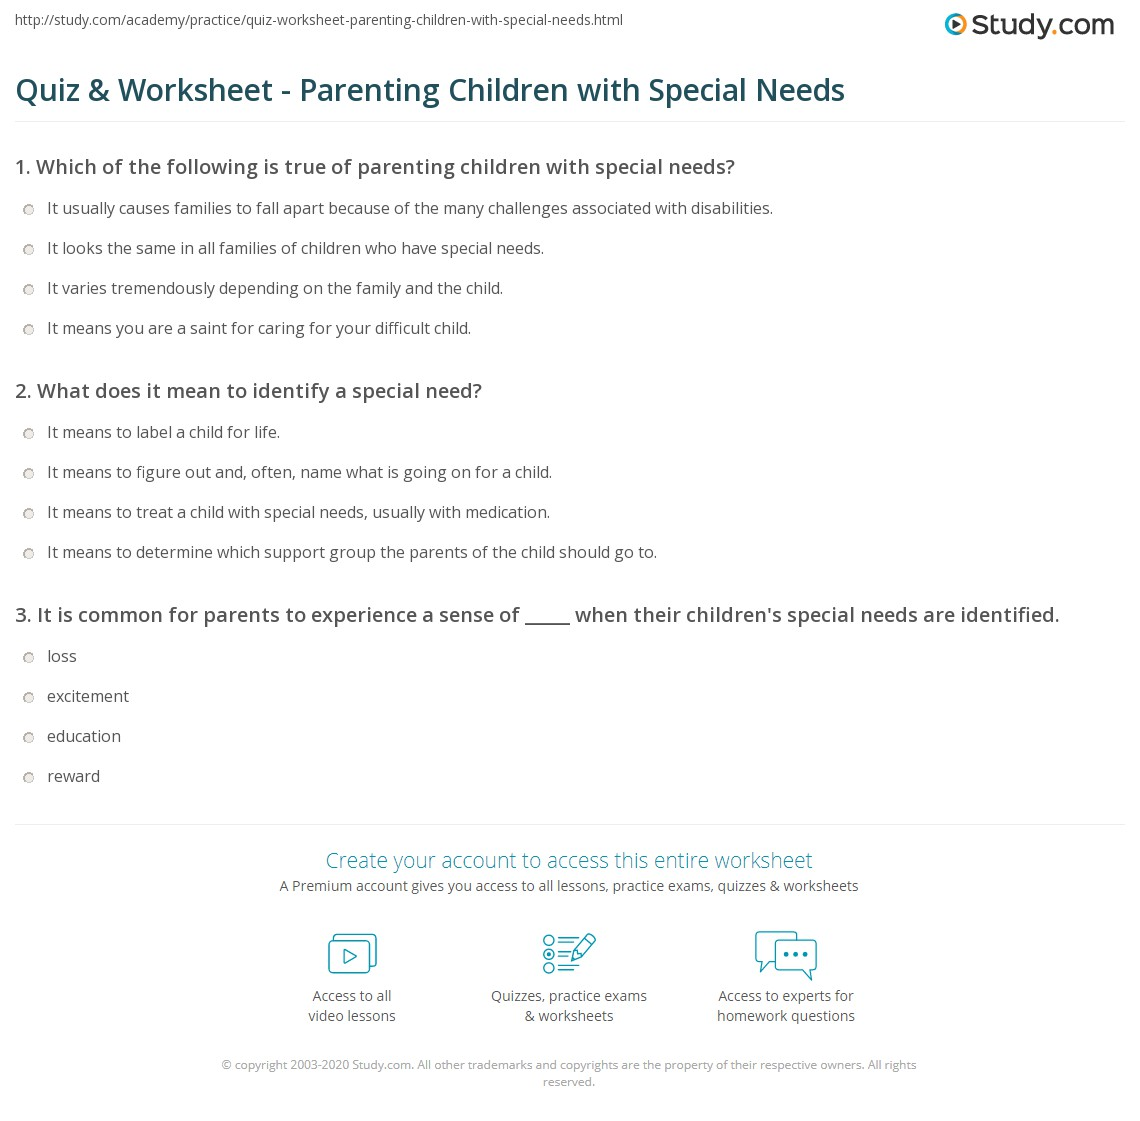 graphic about Printable Worksheets for Special Needs Students named Quiz Worksheet - Parenting Kids with Exceptional Necessities